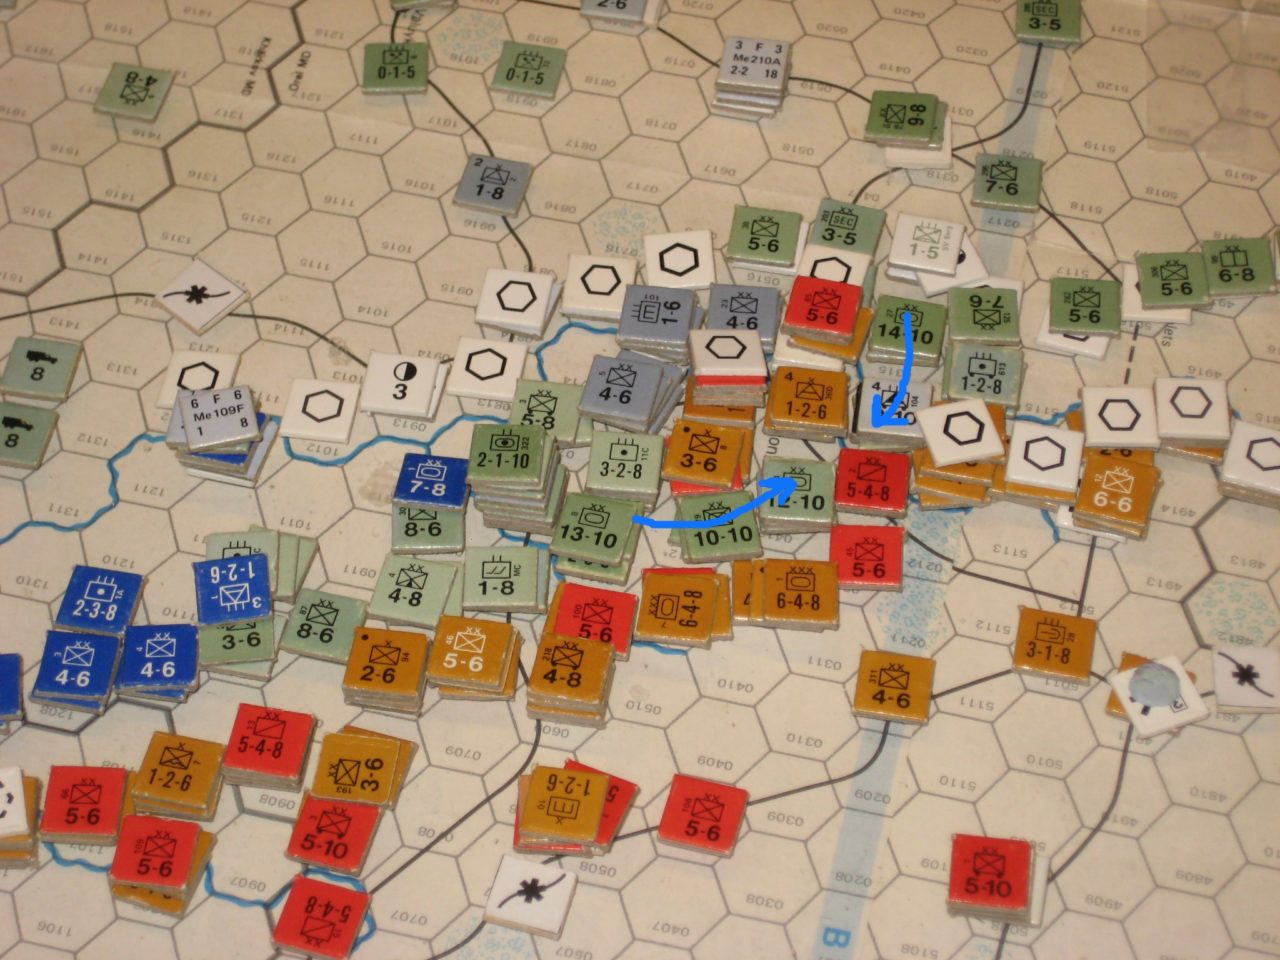 Operation Oxbow strives to isolate Voronezh